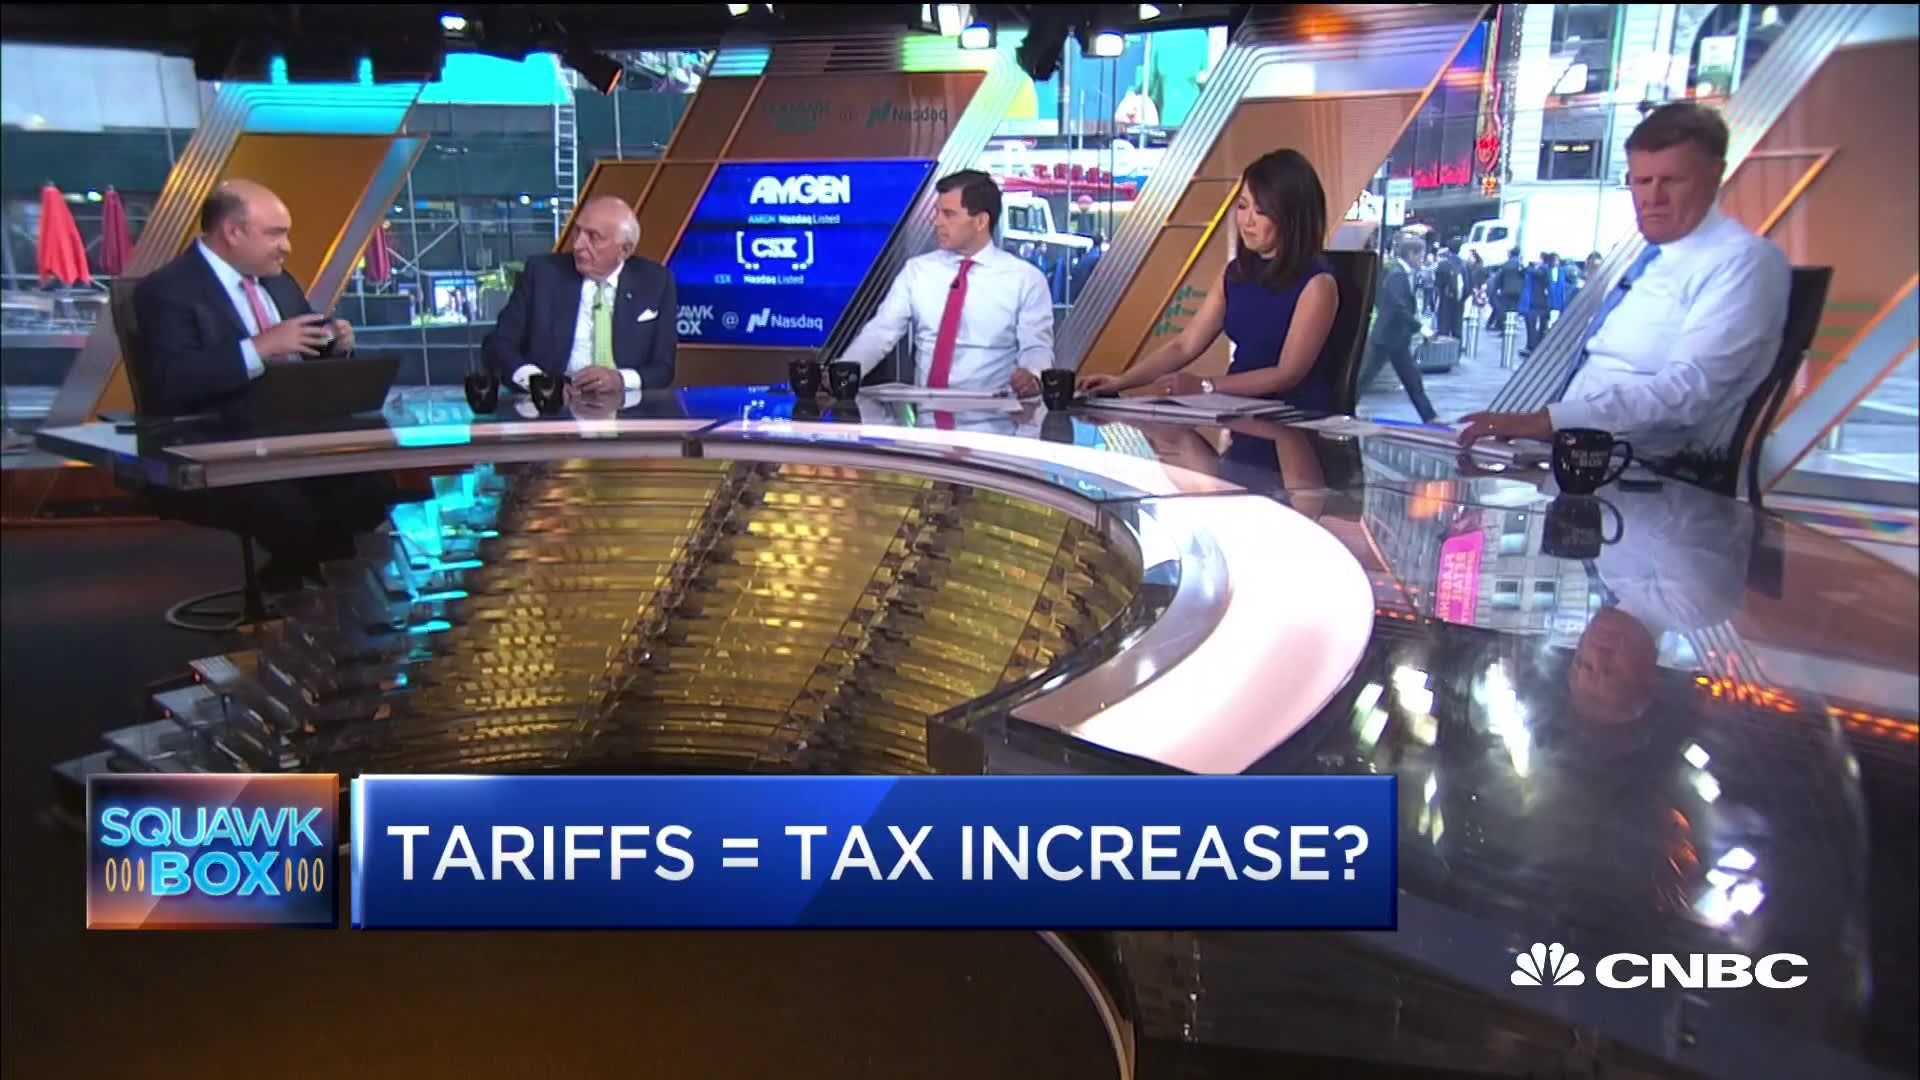 Trump's tariffs are equivalent to one of the largest tax increases in decades